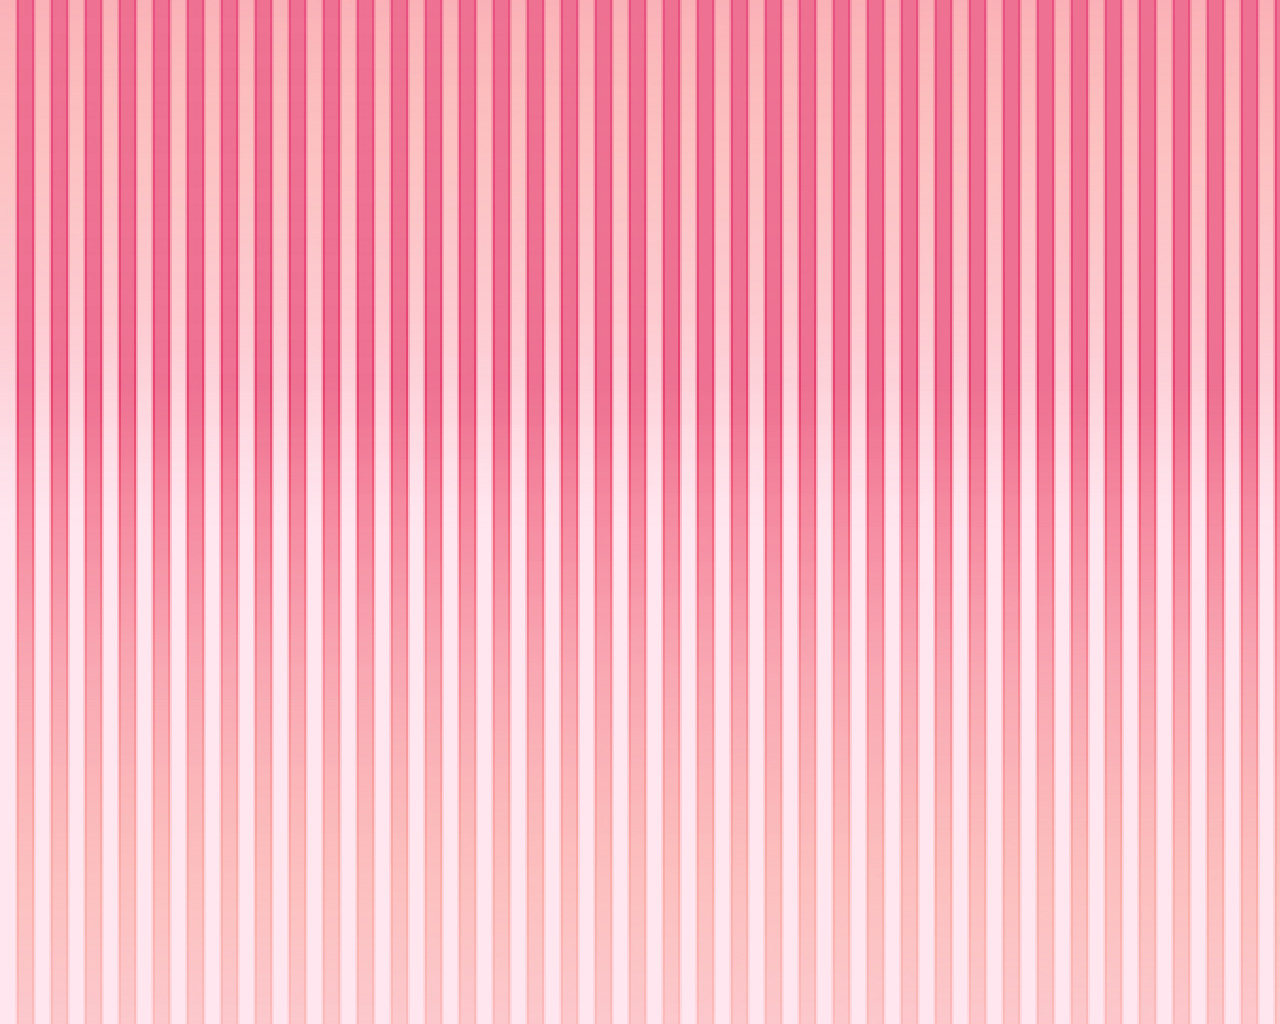 Pink And Blue Striped Wallpaper 2989 Wallpaper: Download Pastel Pink Striped Wallpaper Gallery